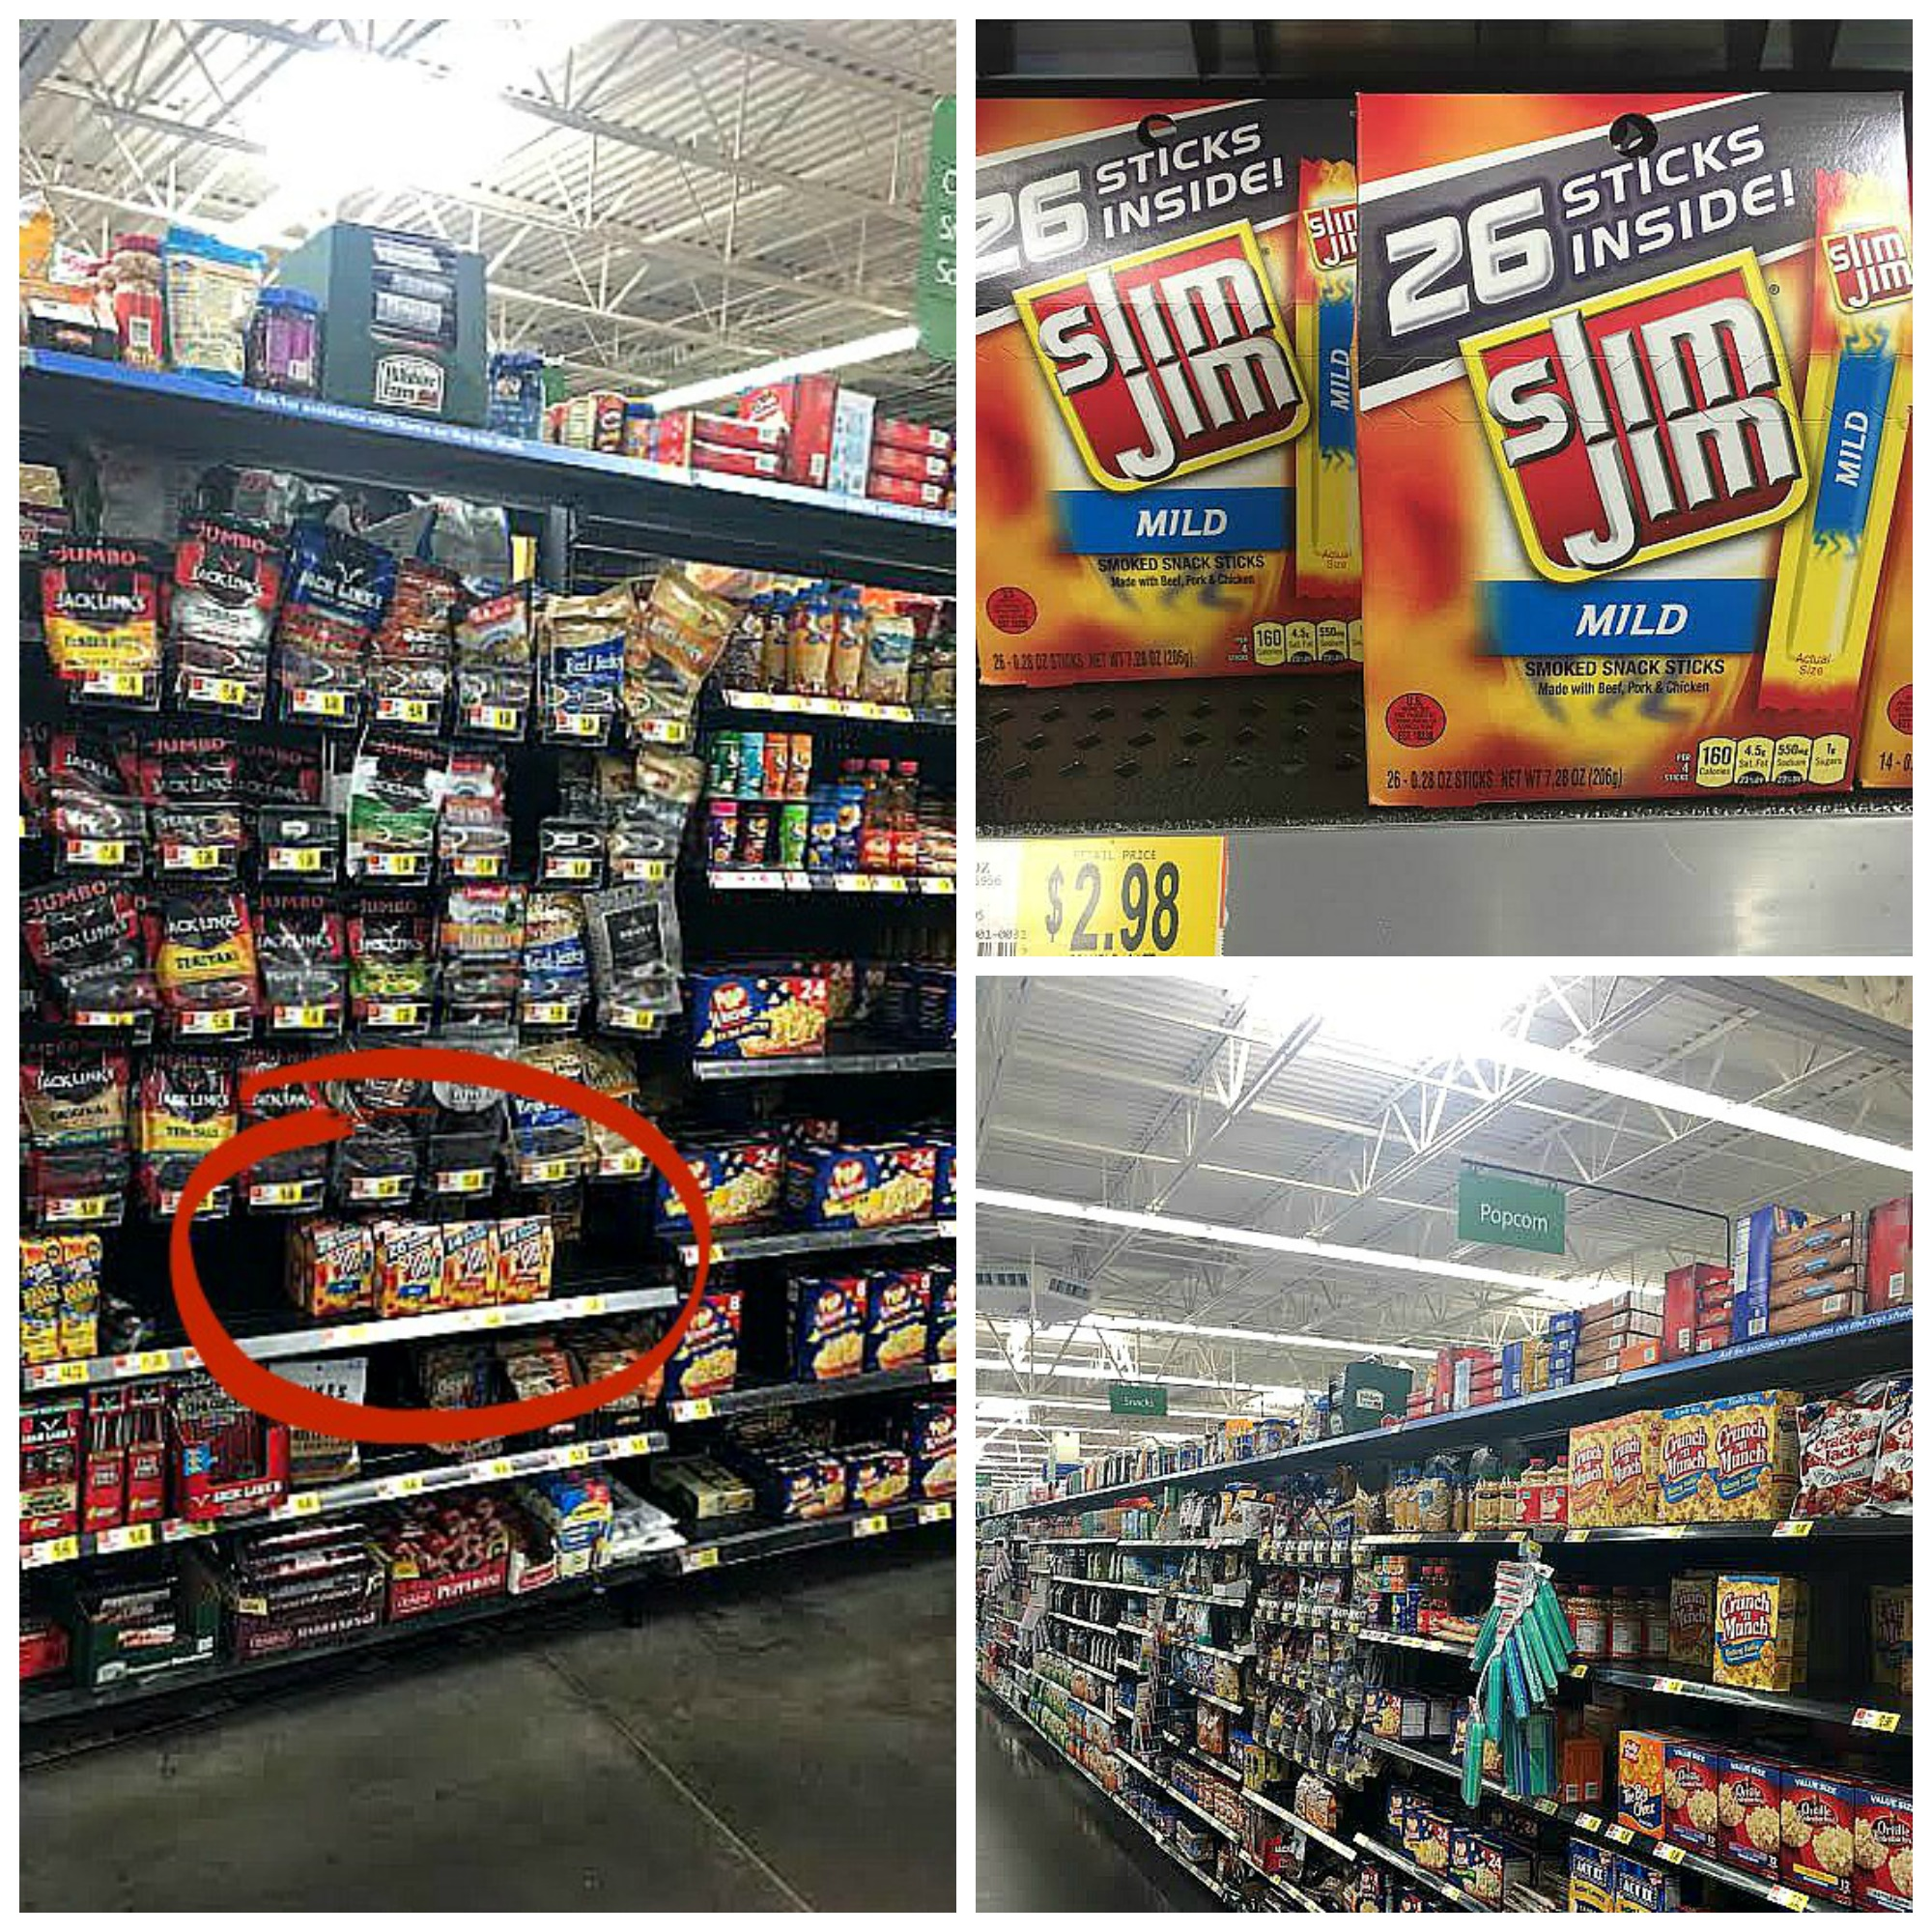 Bold easter basket ideas for the diy dad mom unleashed as i stood it the snack and popcorn aisle of walmart trying to decide between the 26 pack or bold or original i decided it was easter so id better be negle Gallery